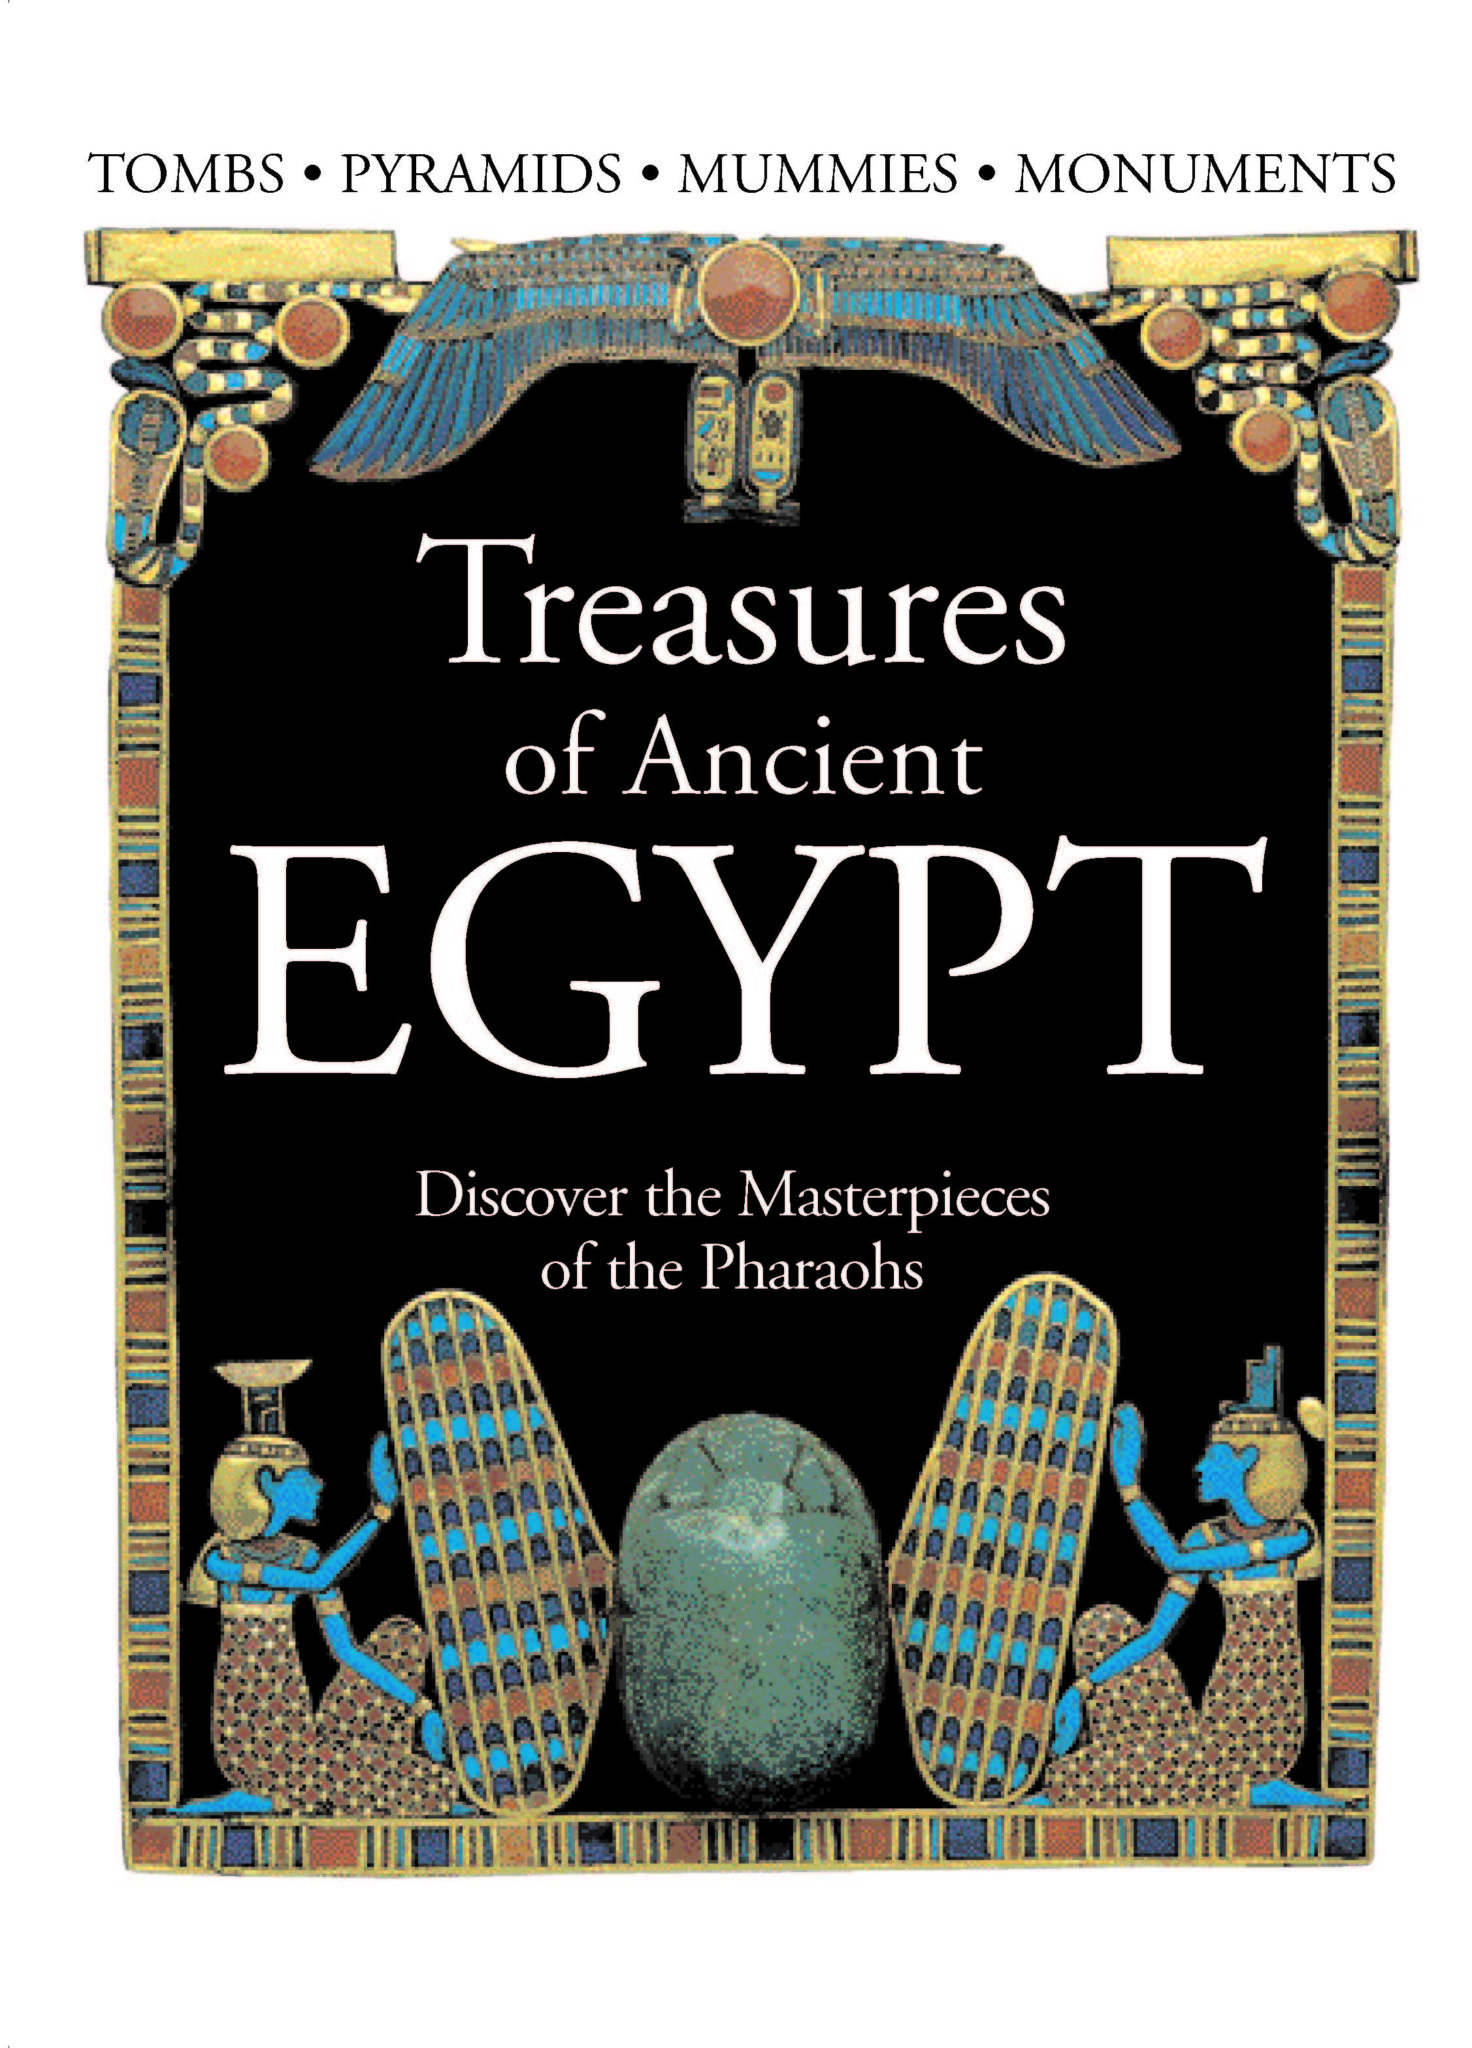 Treasures of Ancient Egypt [176pp]